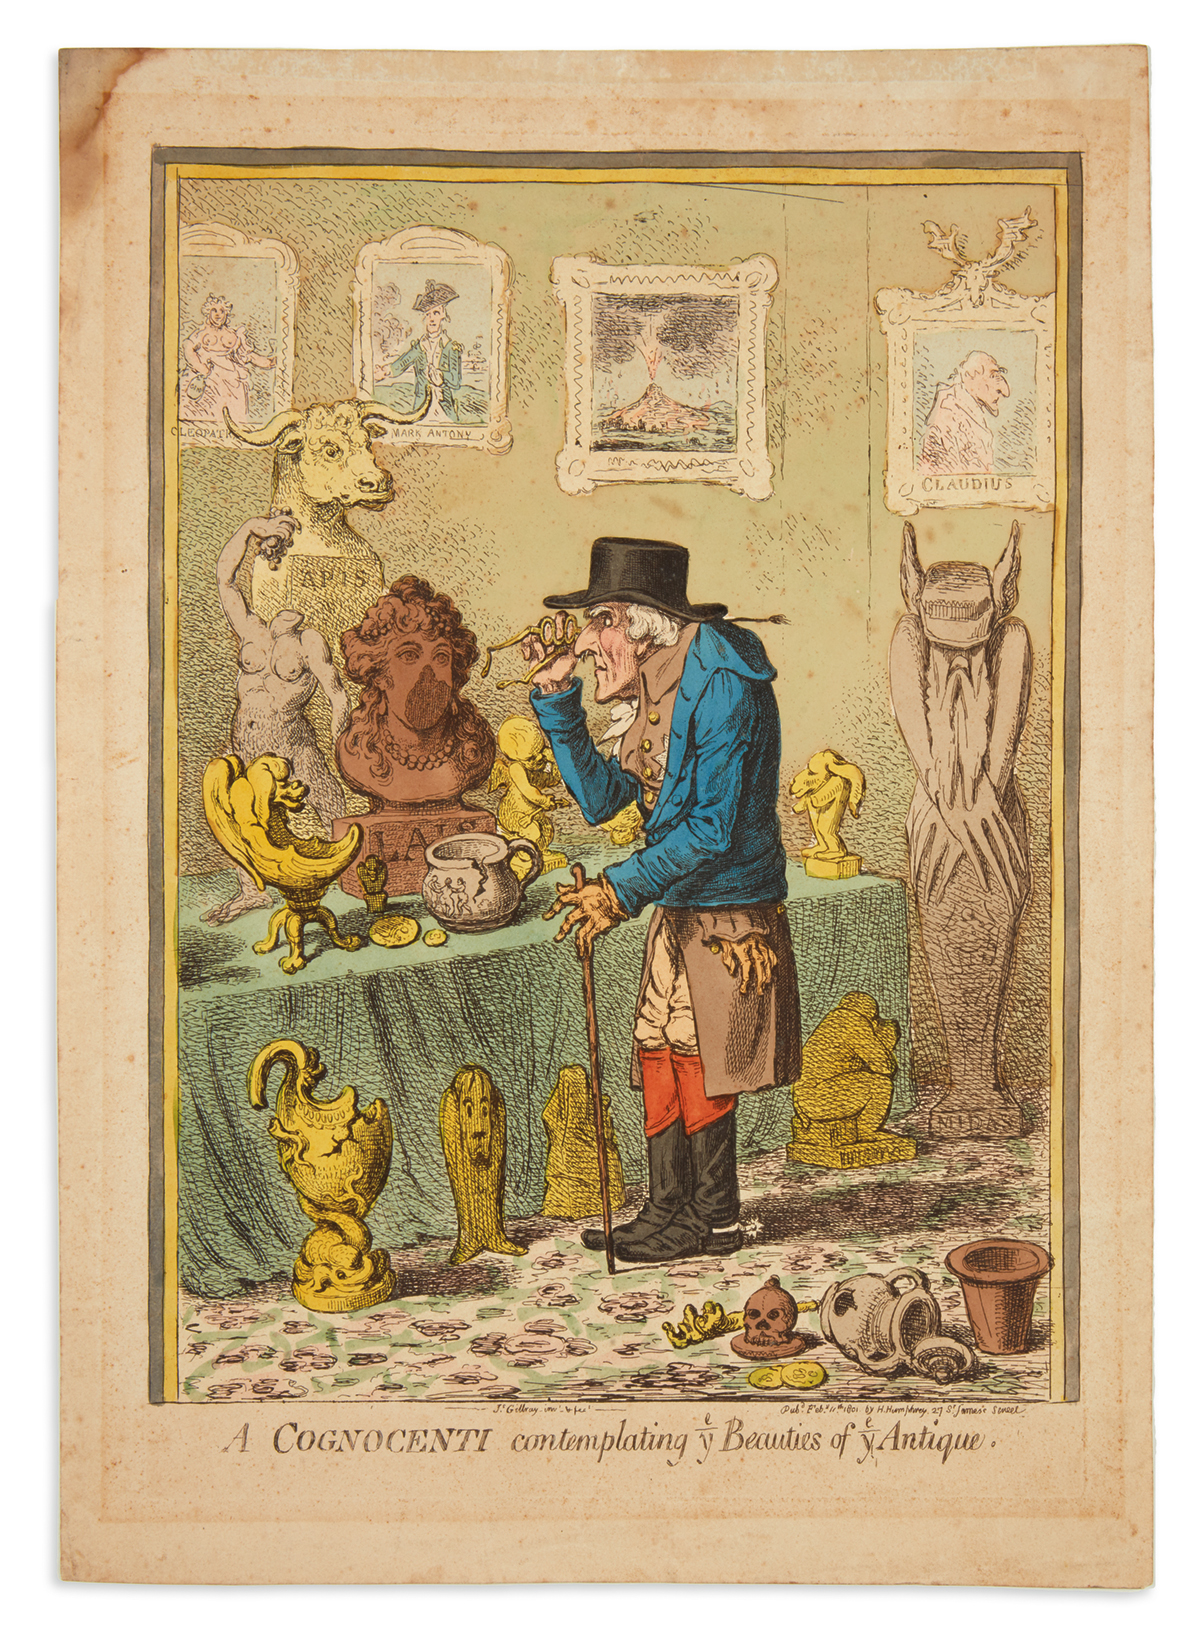 GILLRAY-JAMES-A-Cognocenti-Contemplating-ye-Beauties-of-ye-Antique